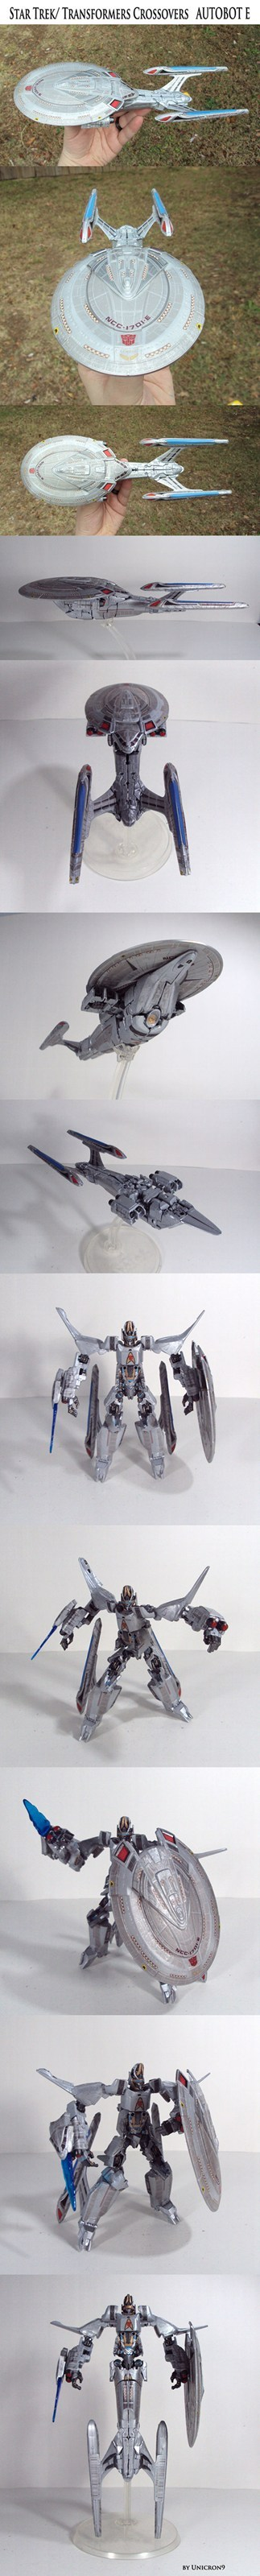 toy, model, star trek, enterprise, transformer